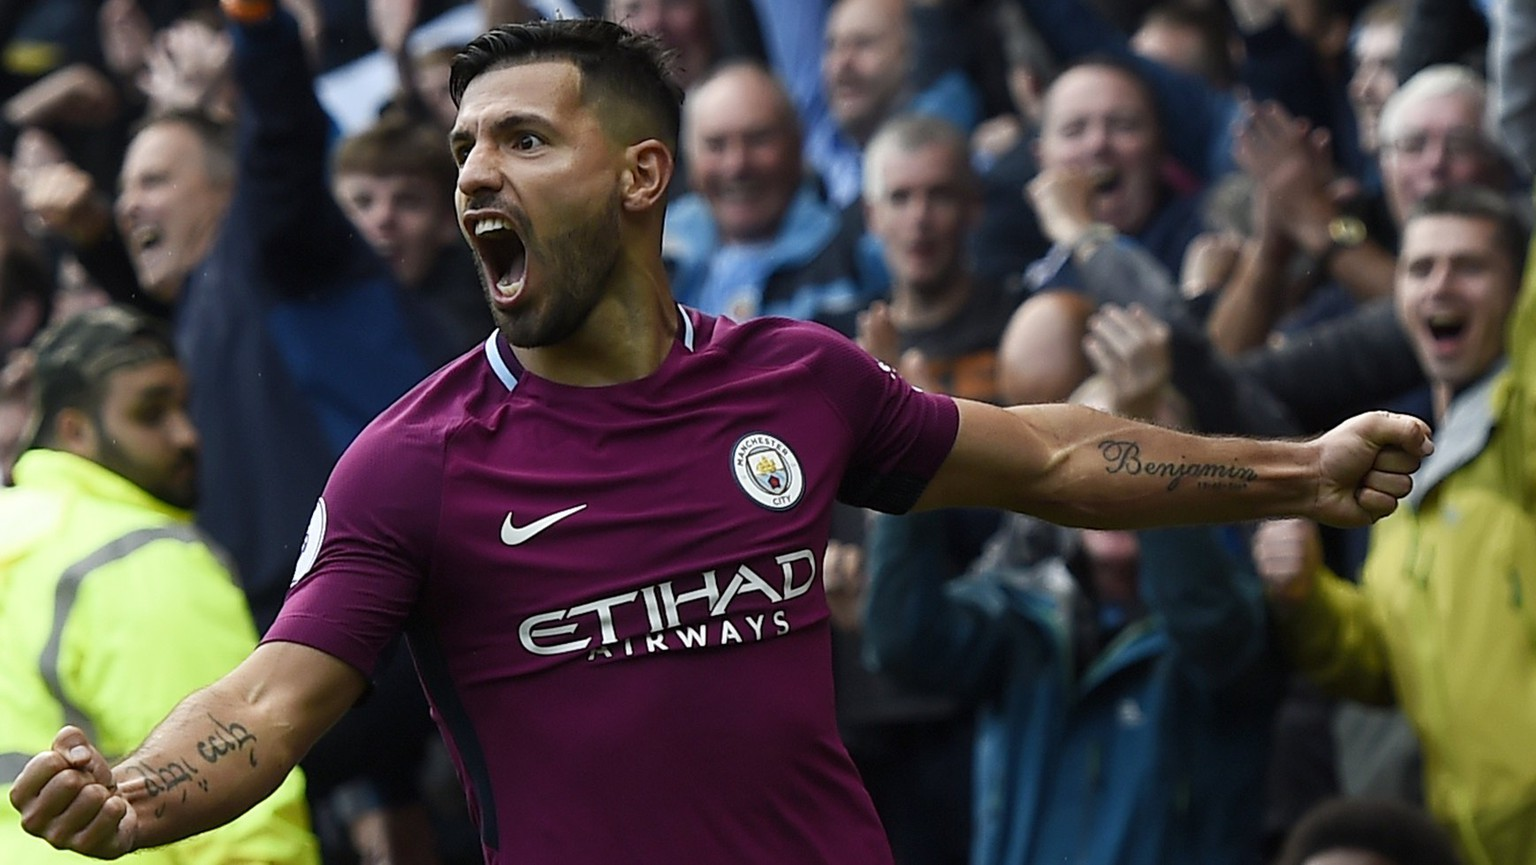 epa06208862 Manchester City's Sergio Aguero  celebrates after scoring against Watford during their Premier League match at Vicarage Road Stadium Watford, Britain, 16 September 2017.  EPA/WILL OLIVER EDITORIAL USE ONLY. No use with unauthorized audio, video, data, fixture lists, club/league logos or 'live' services. Online in-match use limited to 75 images, no video emulation. No use in betting, games or single club/league/player publications.